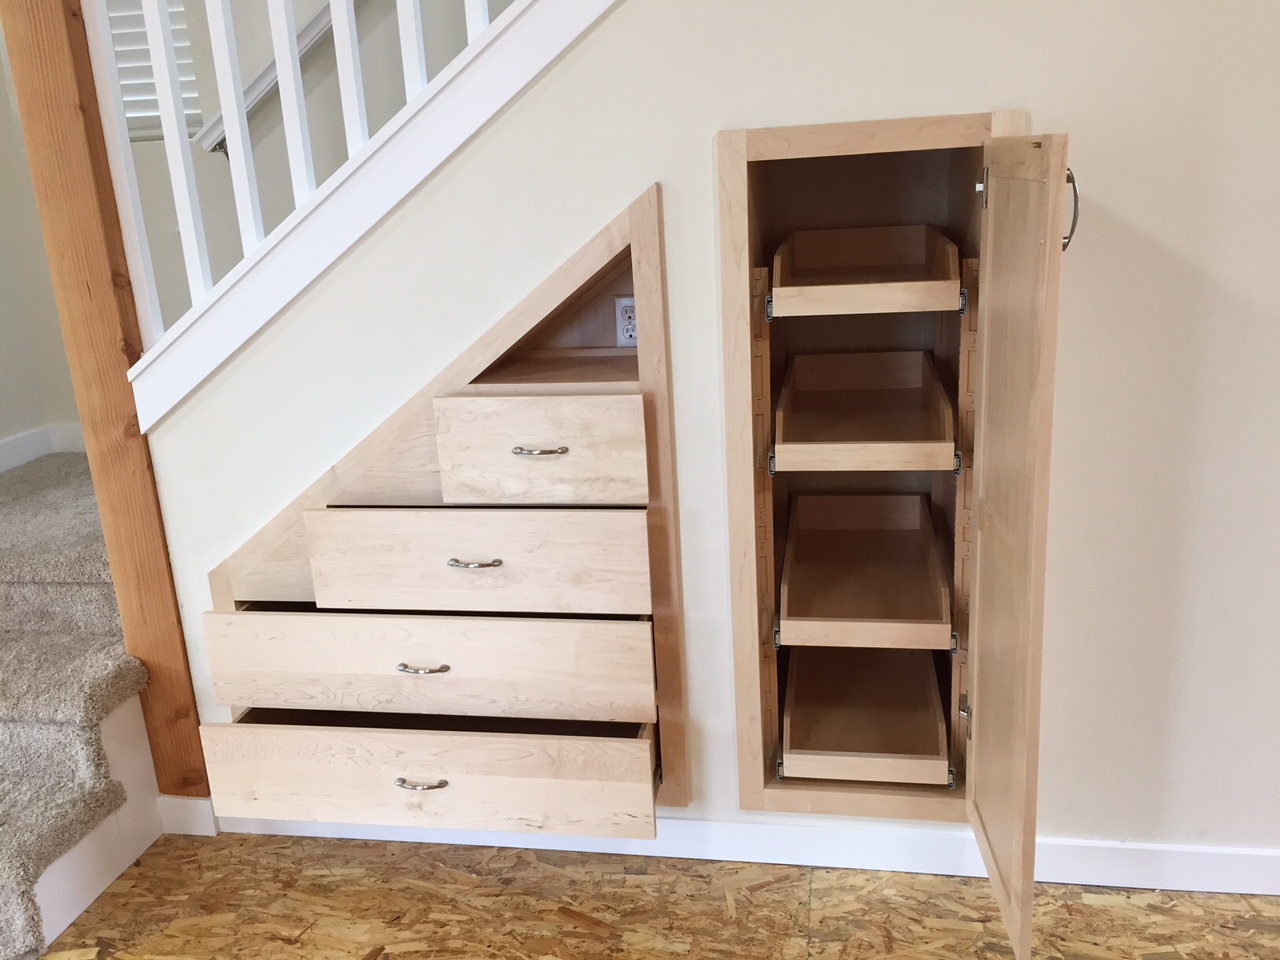 I love to build drawers for under the stairs.